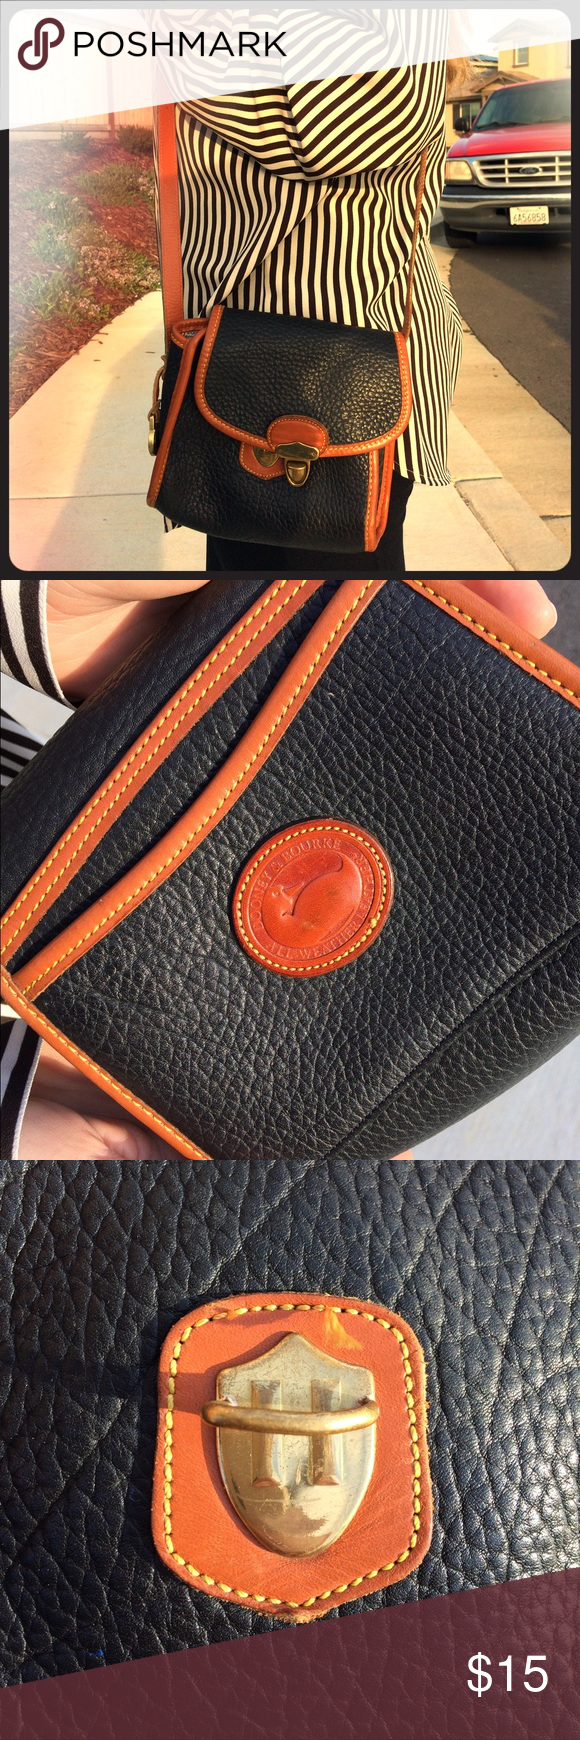 Authentic Dooney & Bourke Crossbody Vintage, retro, timeless, classic. *A little hard to close but will close. Dooney & Bourke Bags Crossbody Bags